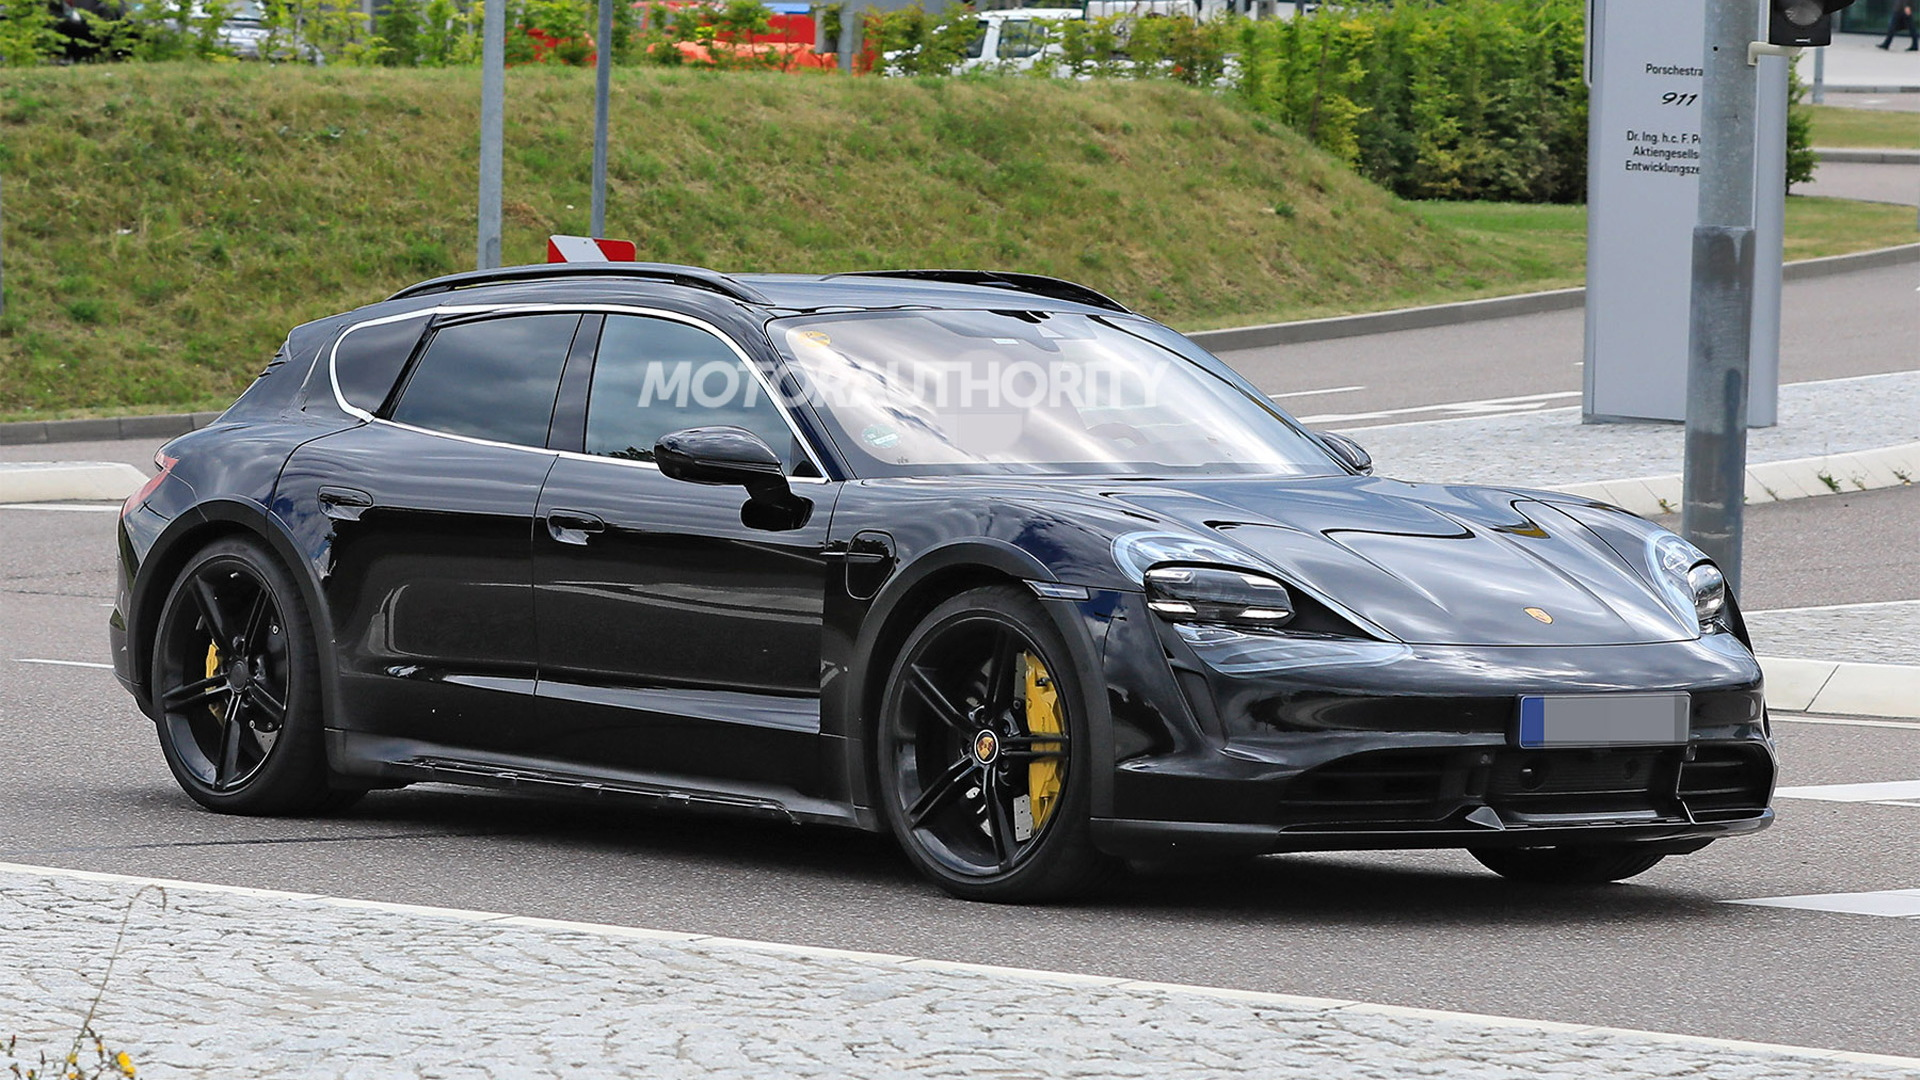 2021 Porsche Taycan Cross Turismo spy shots - Photo credit: S. Baldauf/SB-Medien